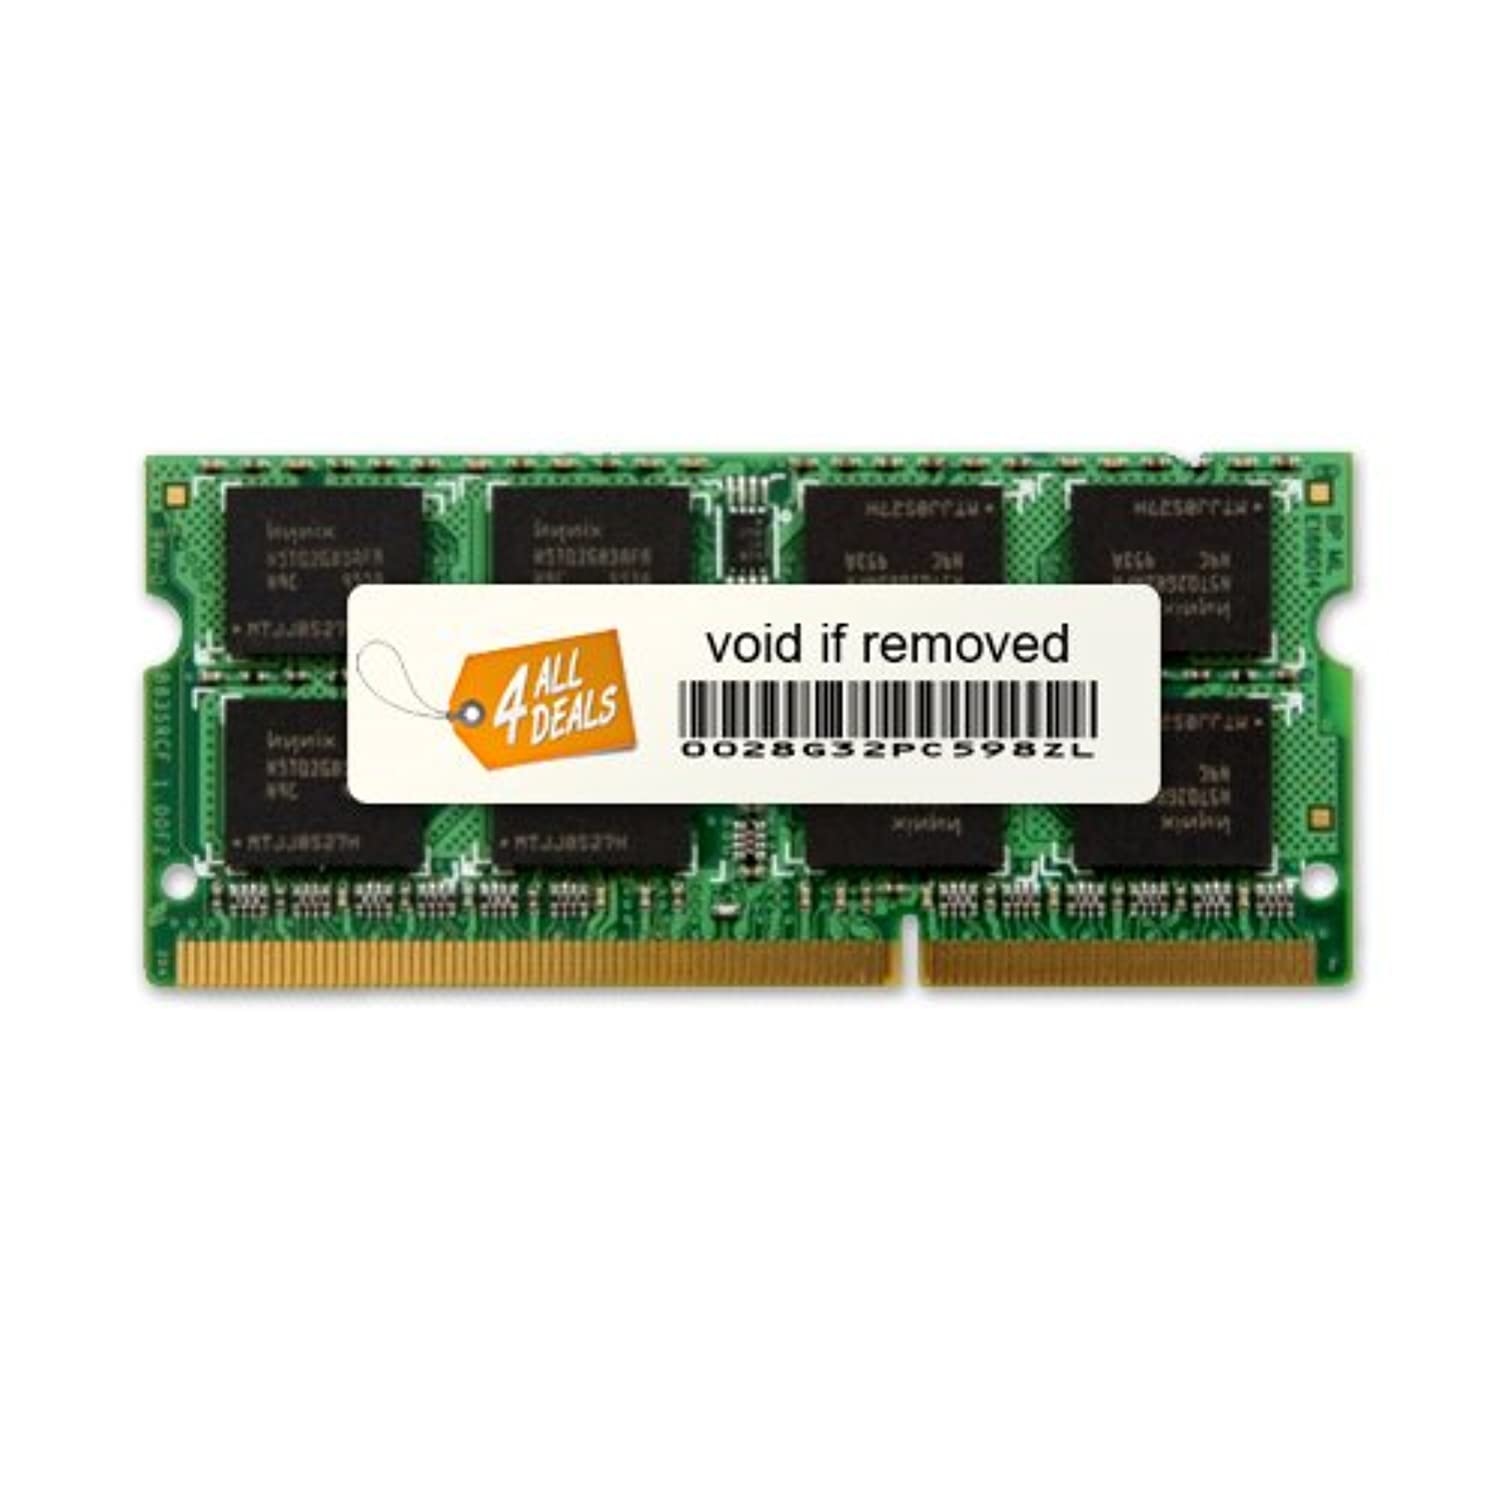 2GB DDR3-1600 (PC3-12800) Memory RAM Upgrade for the Acer Aspire Switch 10 Series SW5-012P-19KD